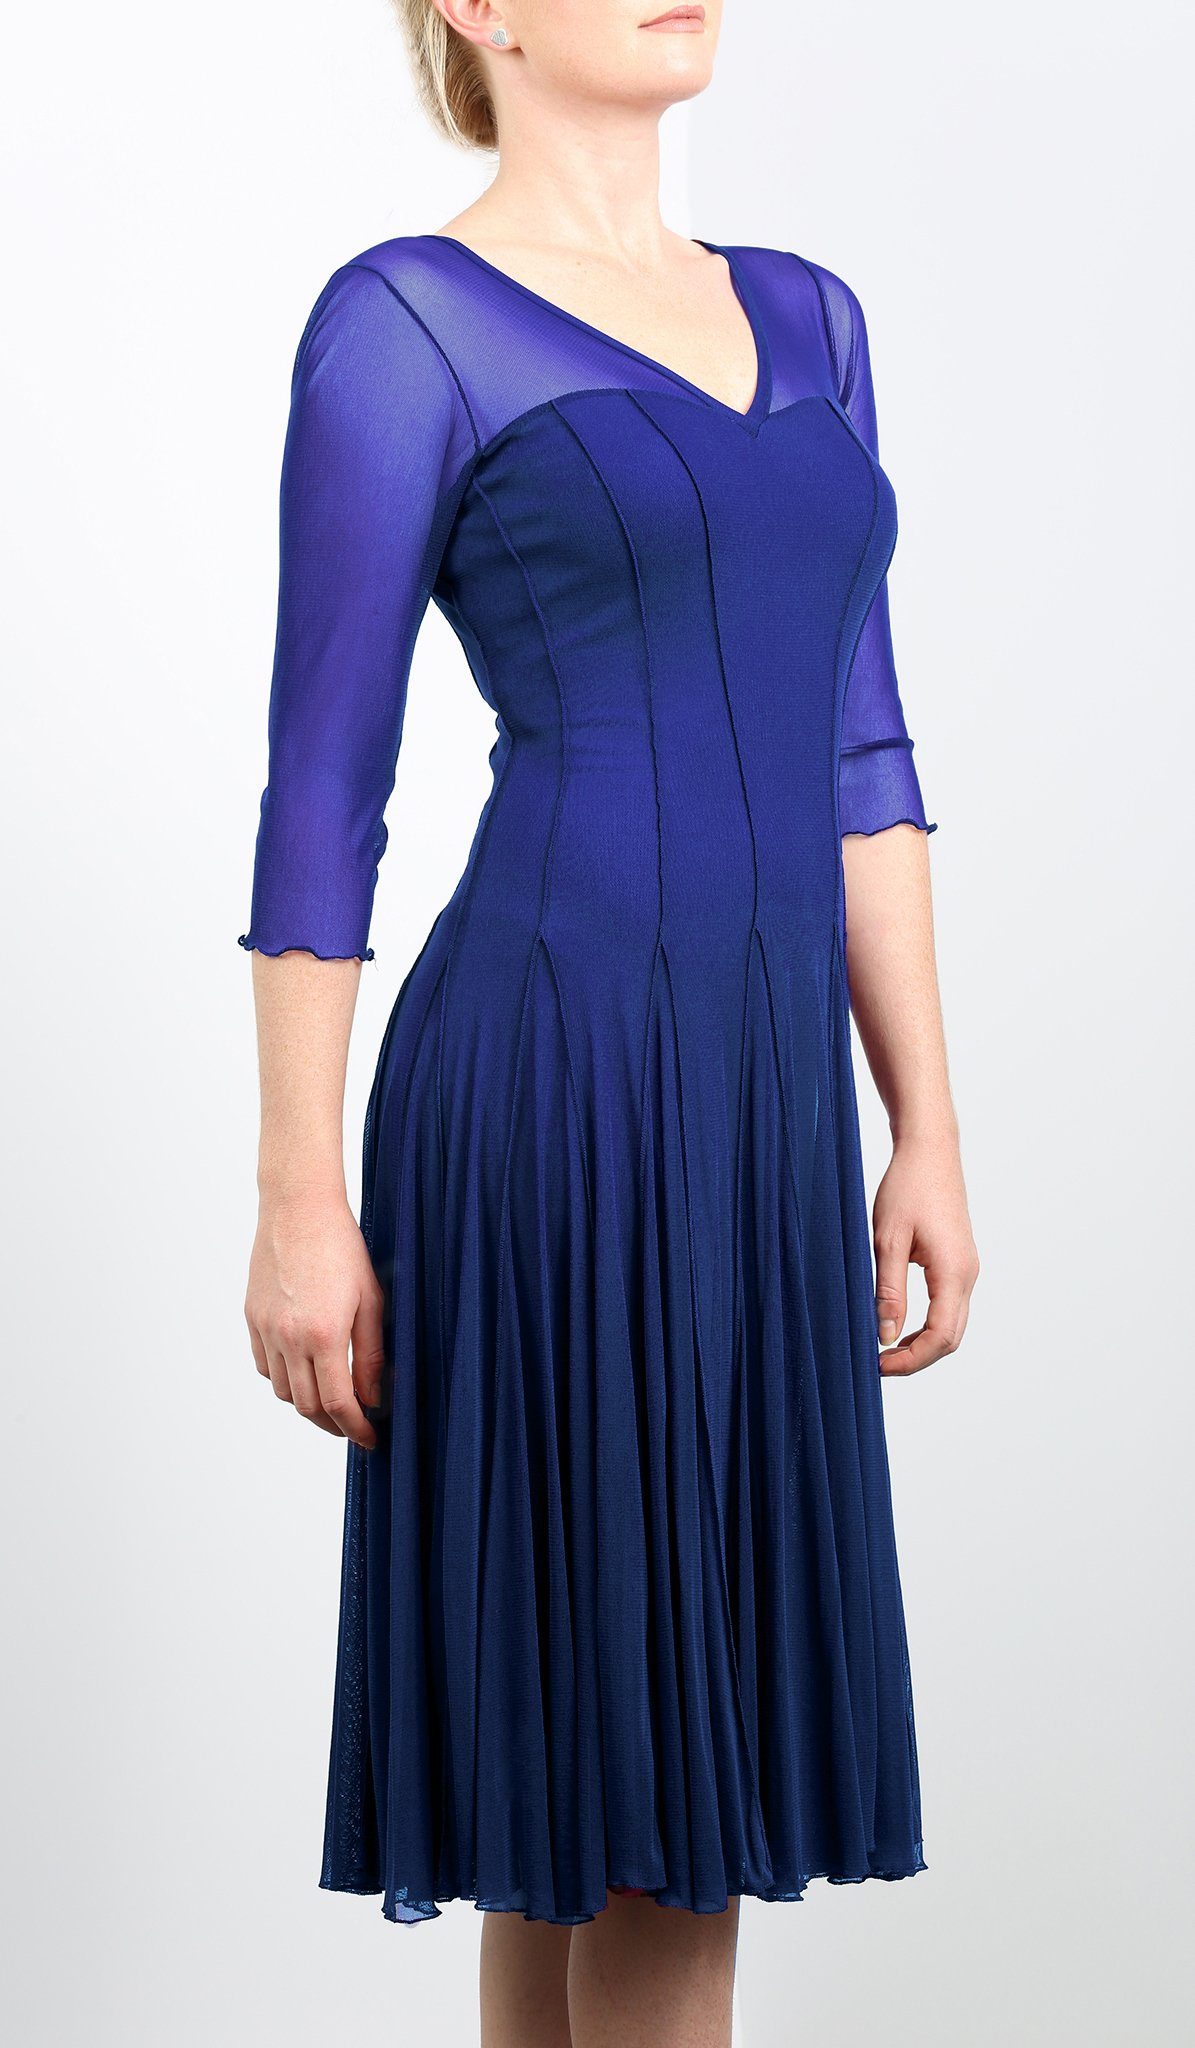 Mesh Panel Dress With 3/4 Sleeves